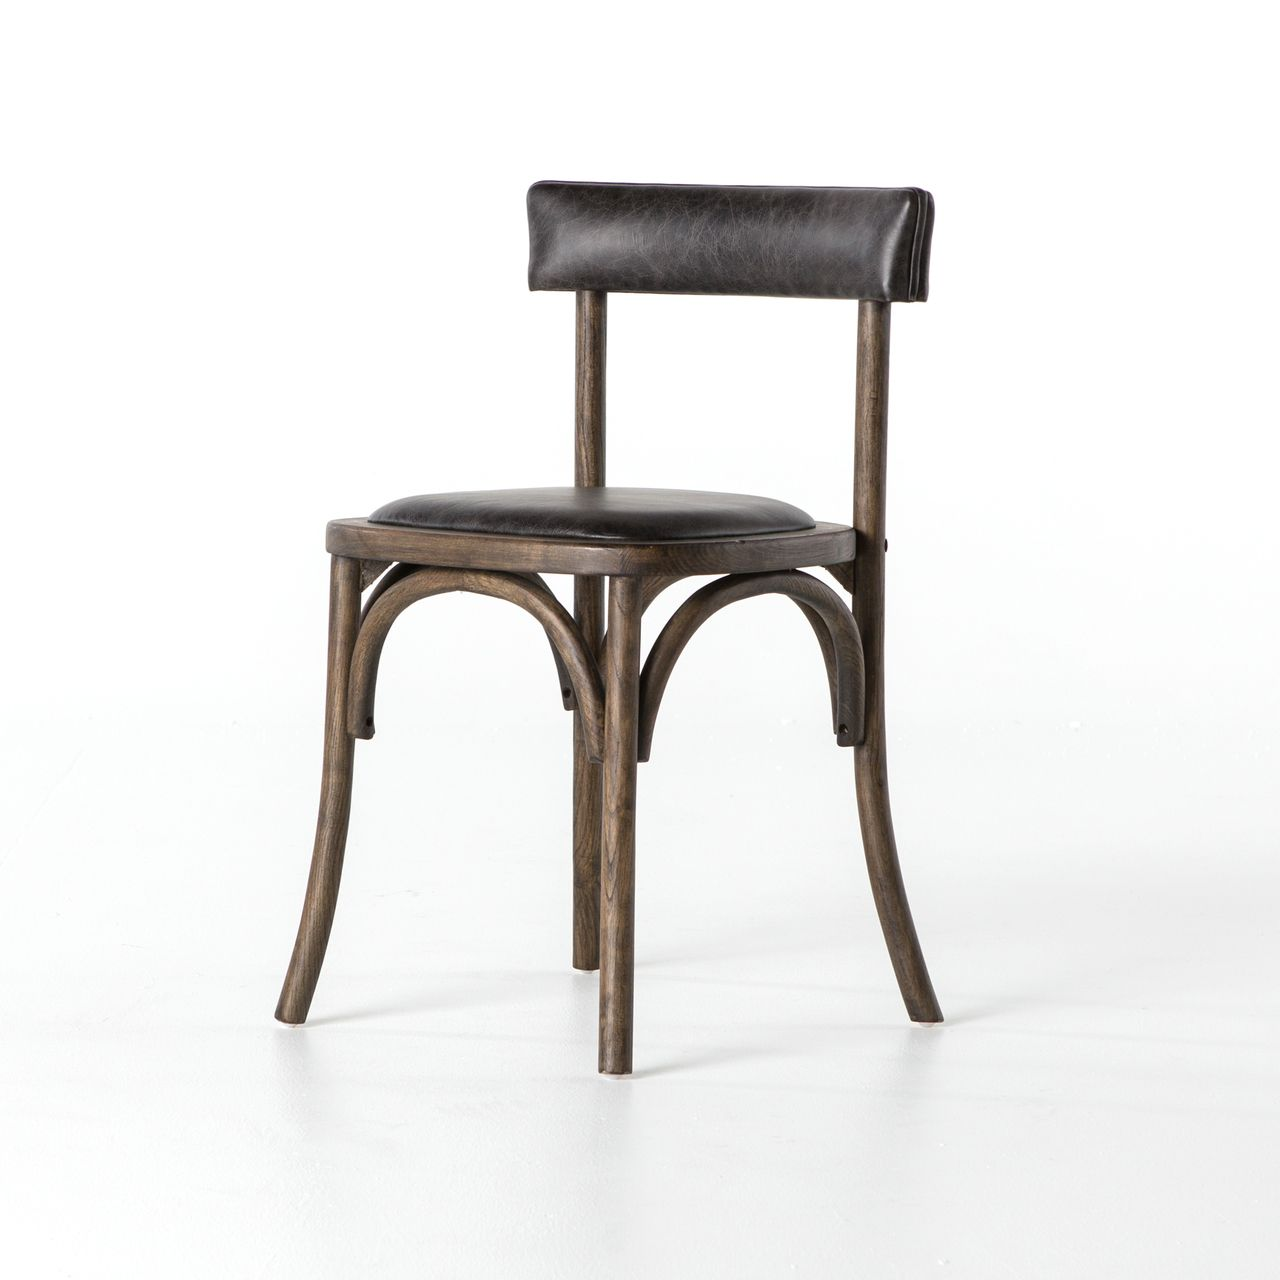 French farmhouse chair with leather seat with images